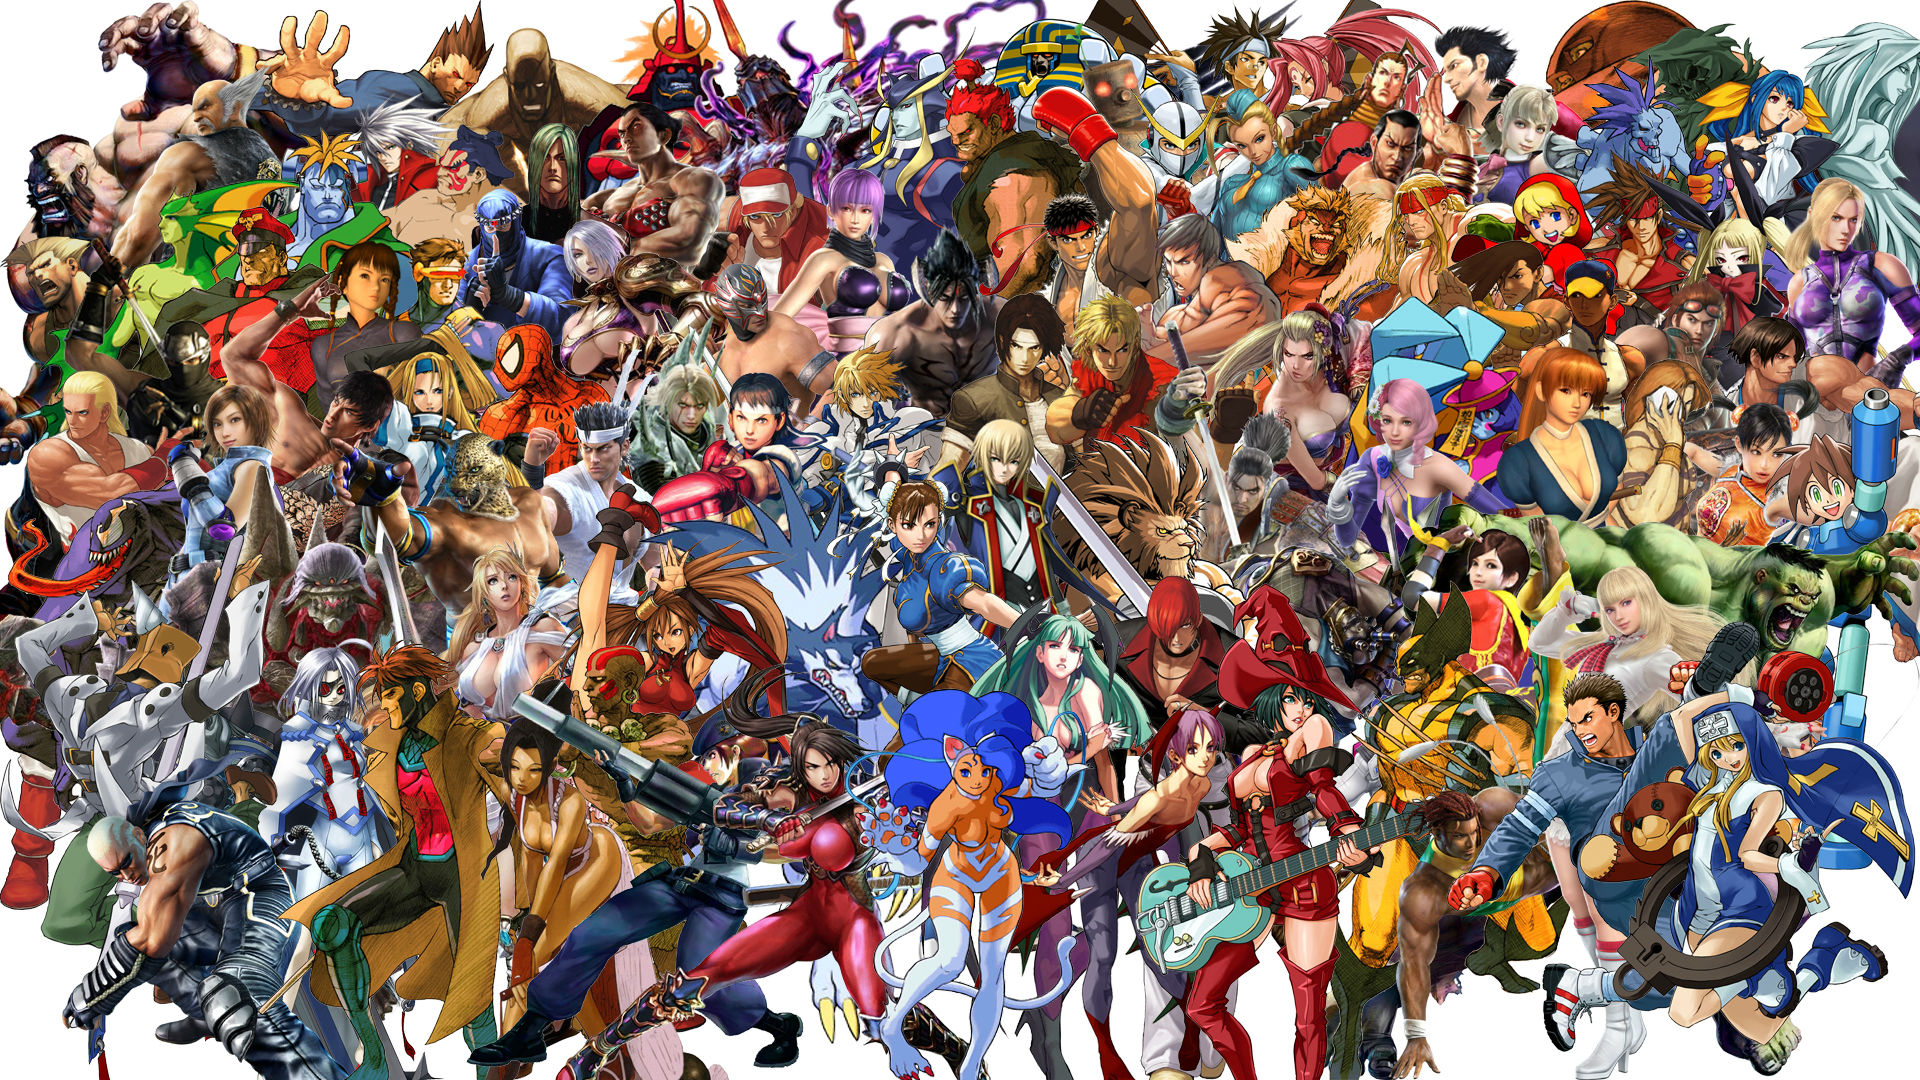 Fighting Games Image 2